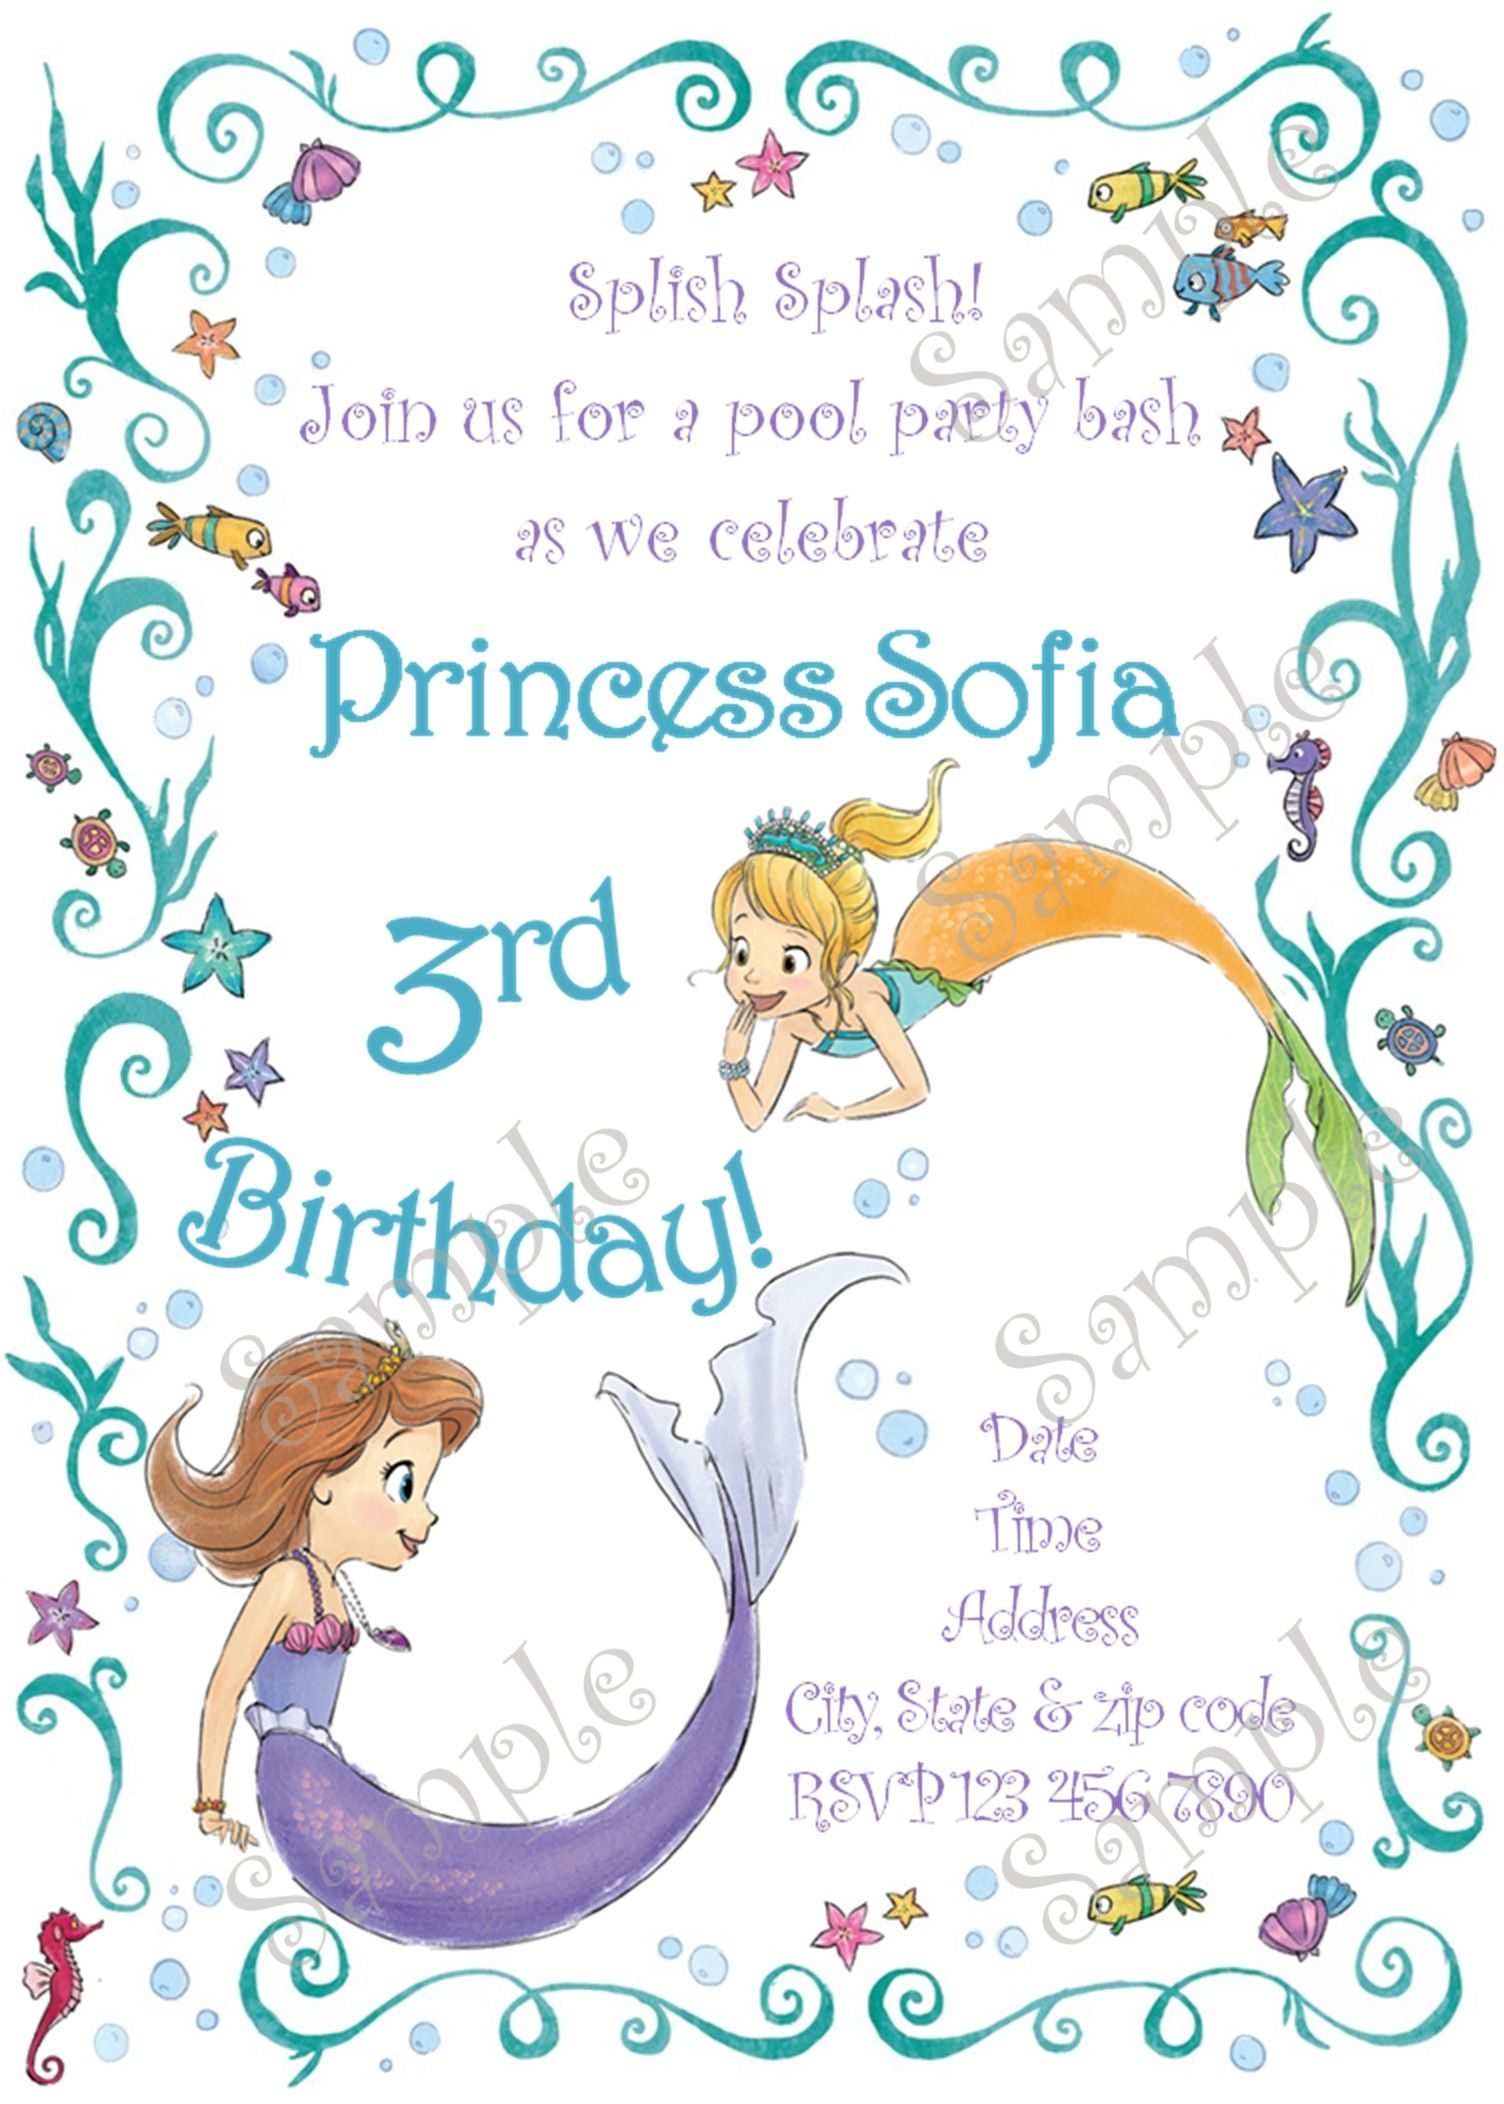 Sofia The First Birthday Party Invitation Sofia The First Pool Party